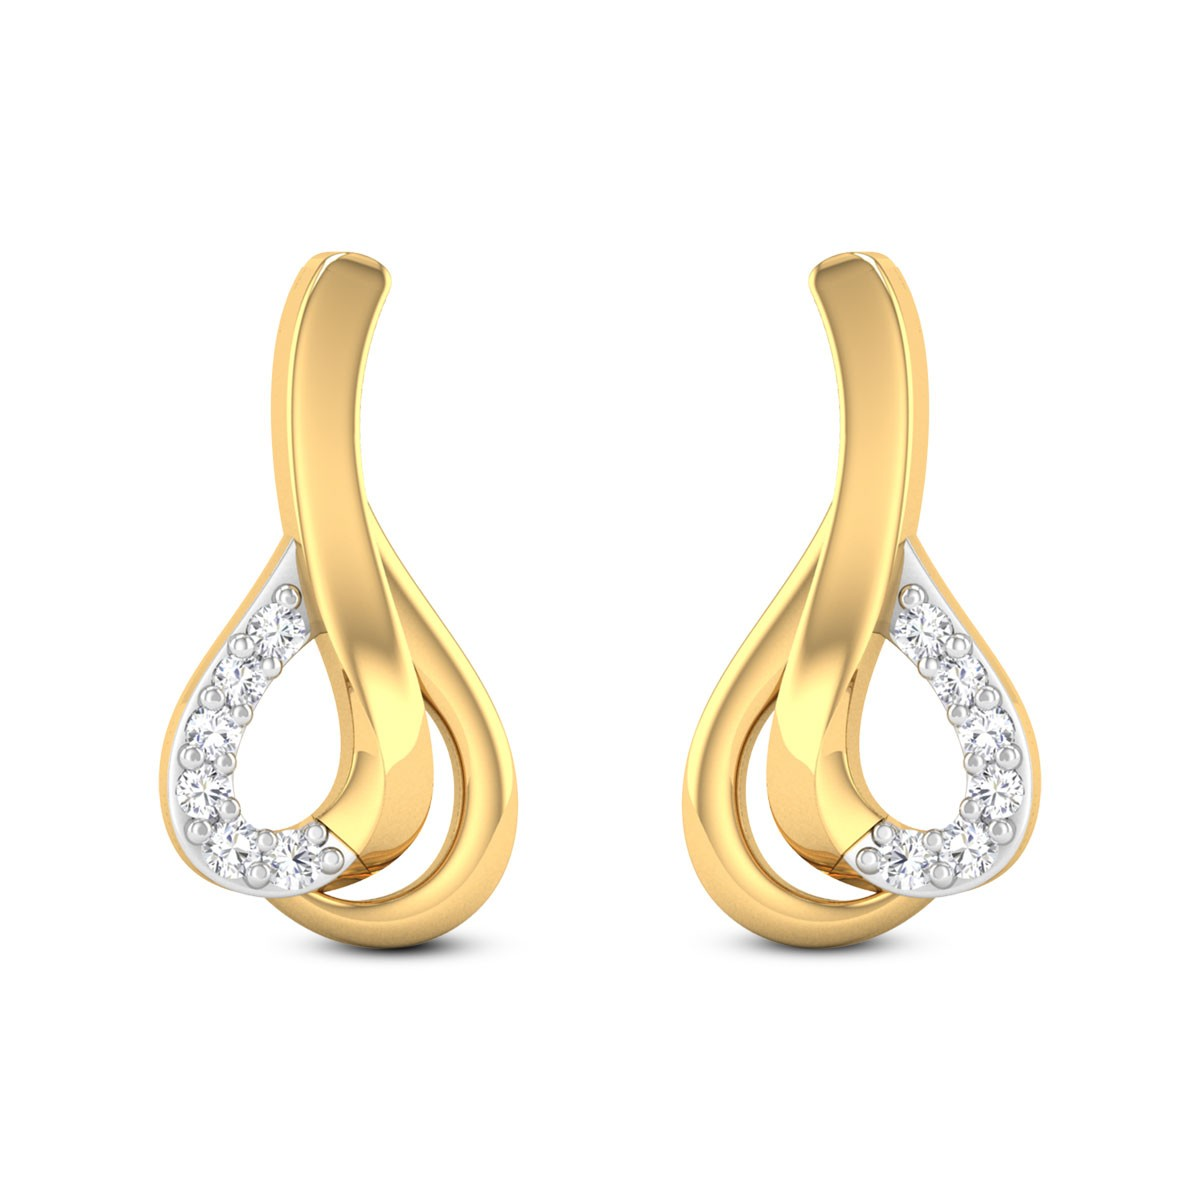 Fantasia Diamond Earrings